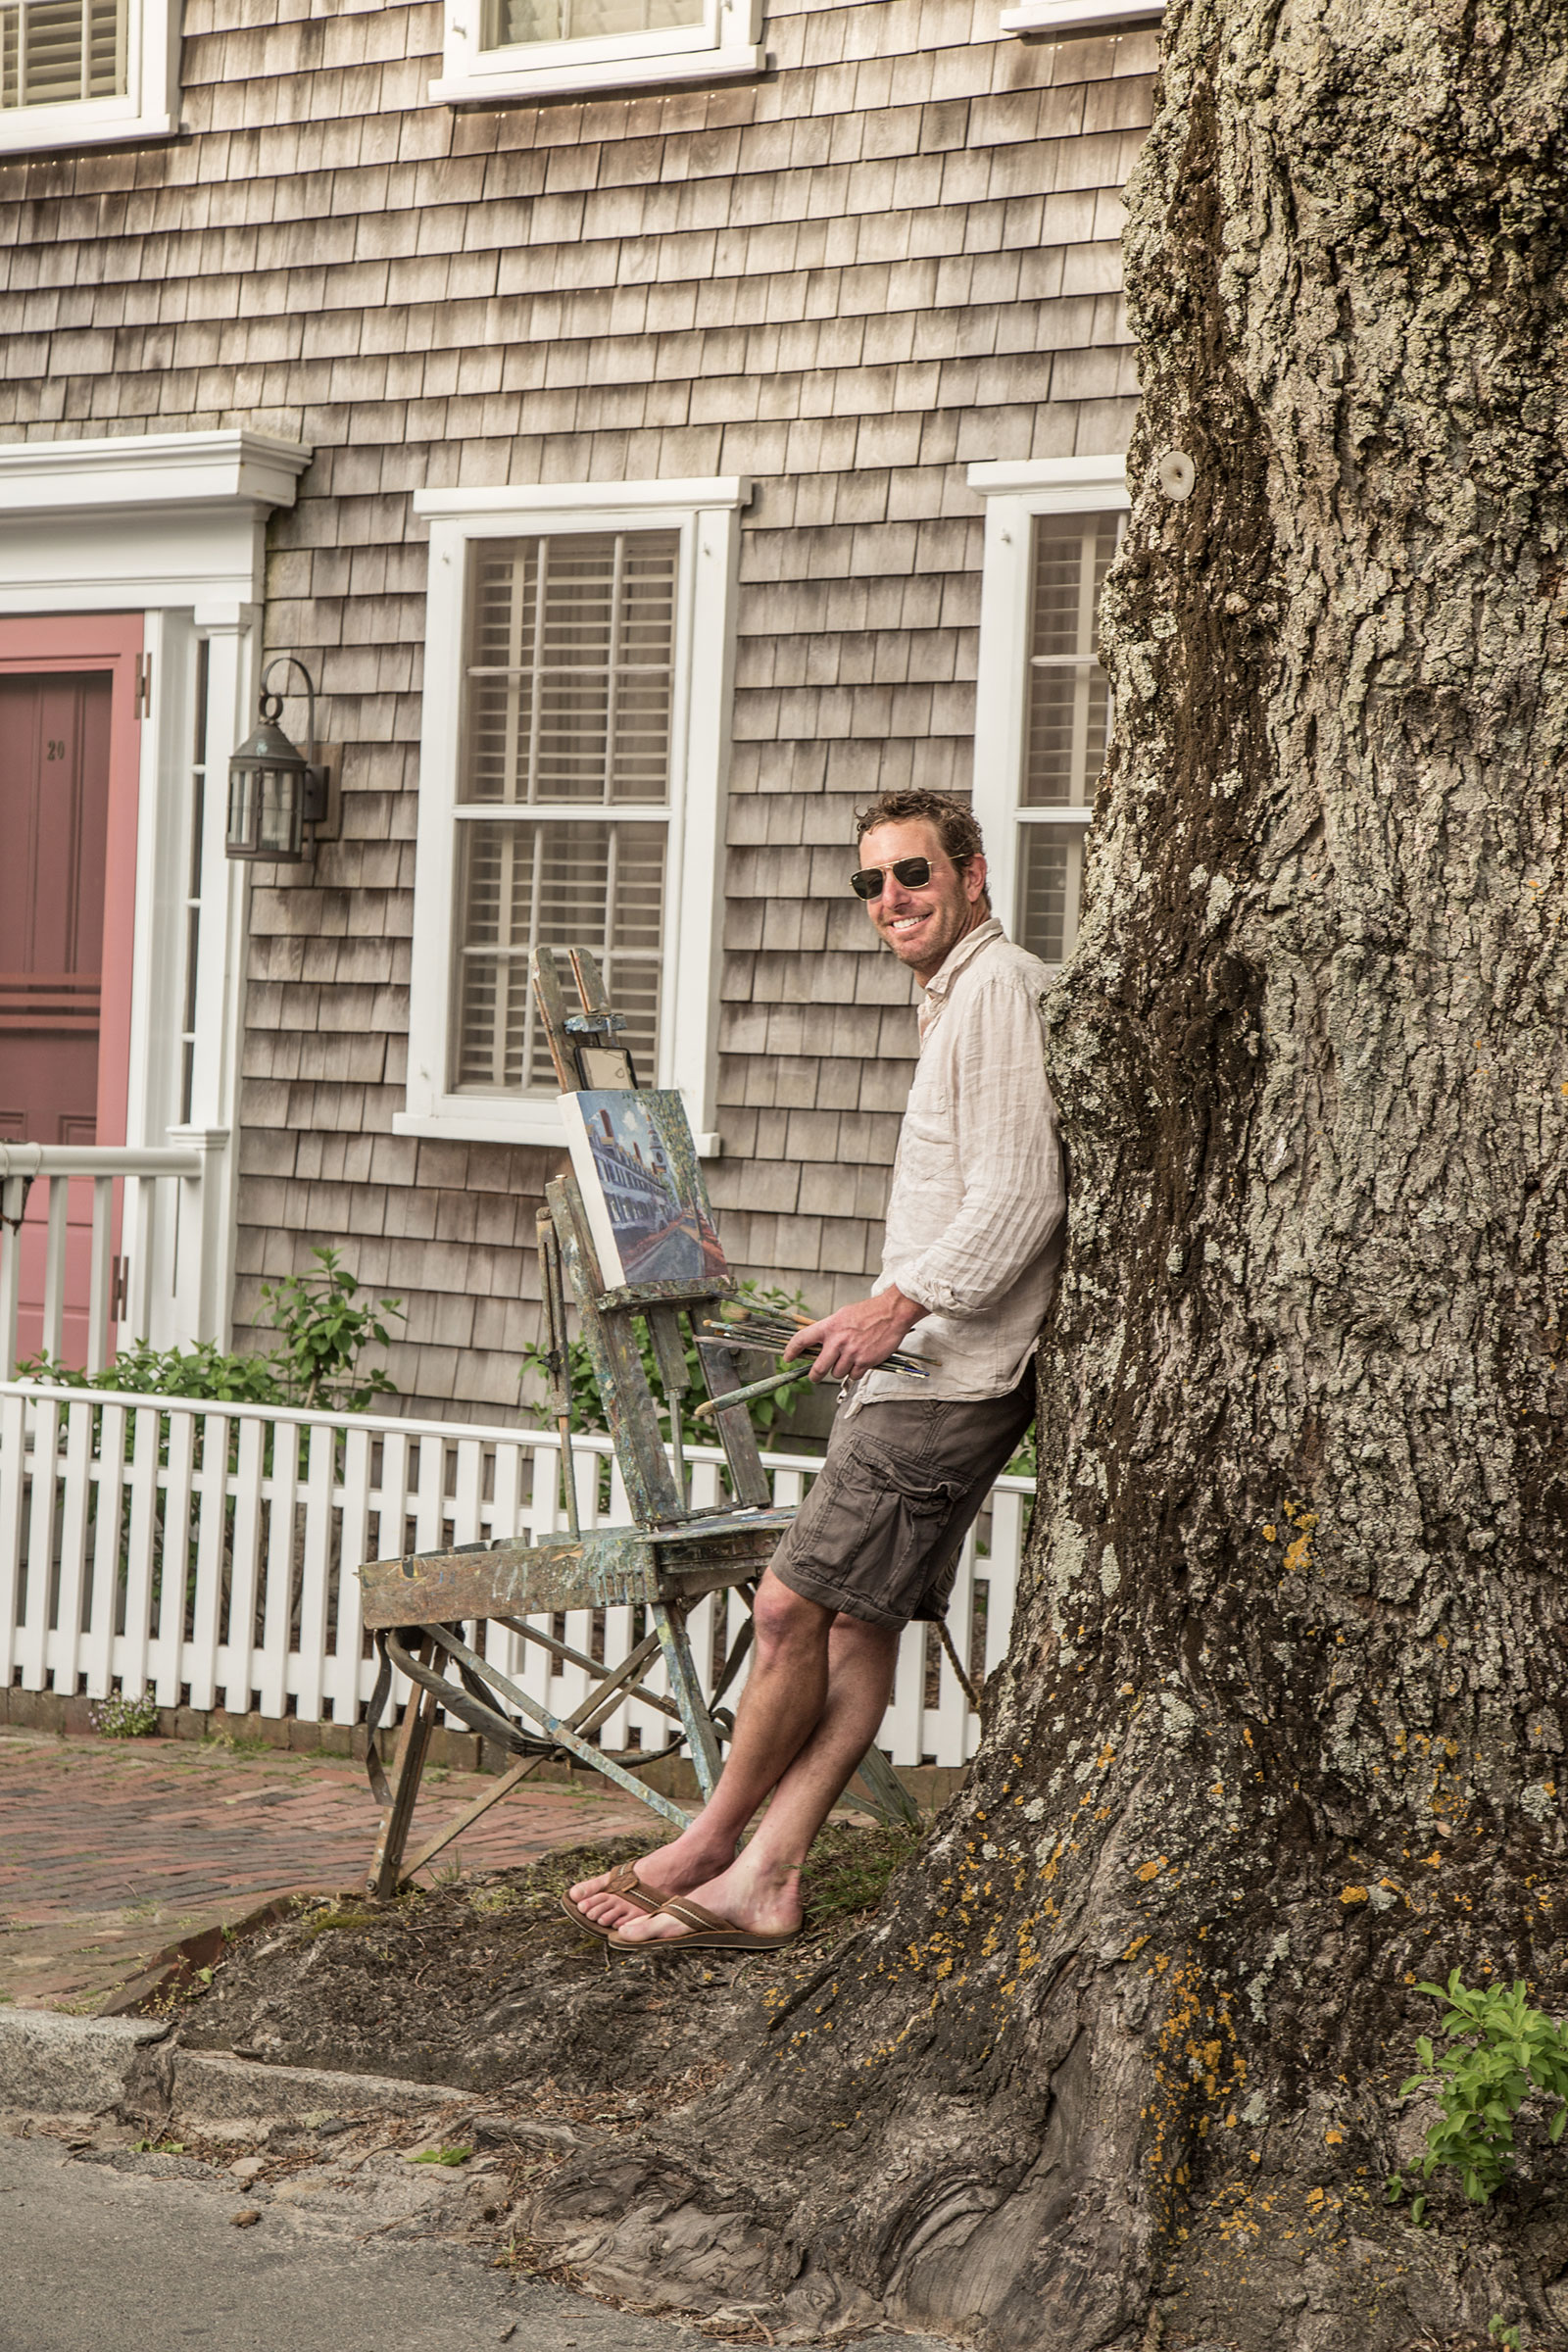 nantucket hispanic single women Alphabetize list is a free online tool that puts any list in alphabetical order alphabetize lists, last names, friends, videos, movies, television titleswhatever.